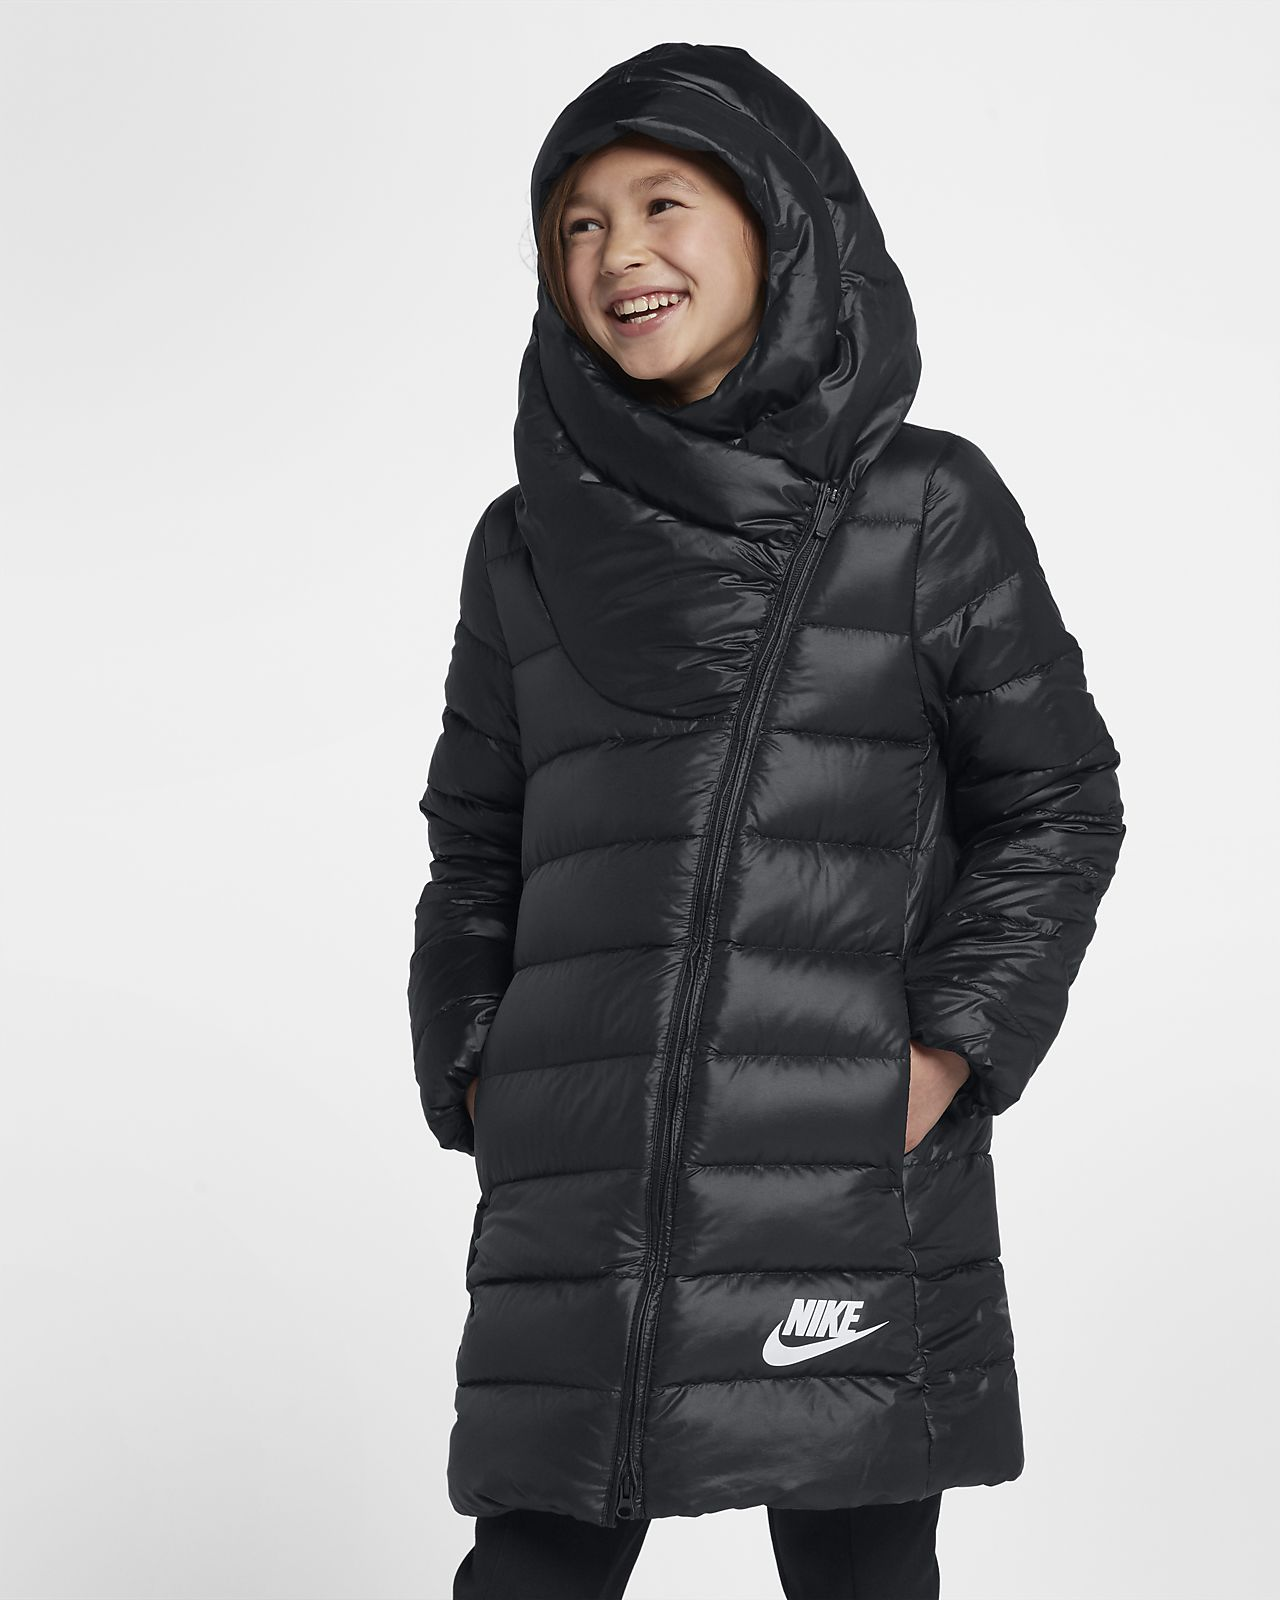 f05bb1a7fd4f Nike Sportswear Older Kids  (Girls ) Down Jacket. Nike.com AU